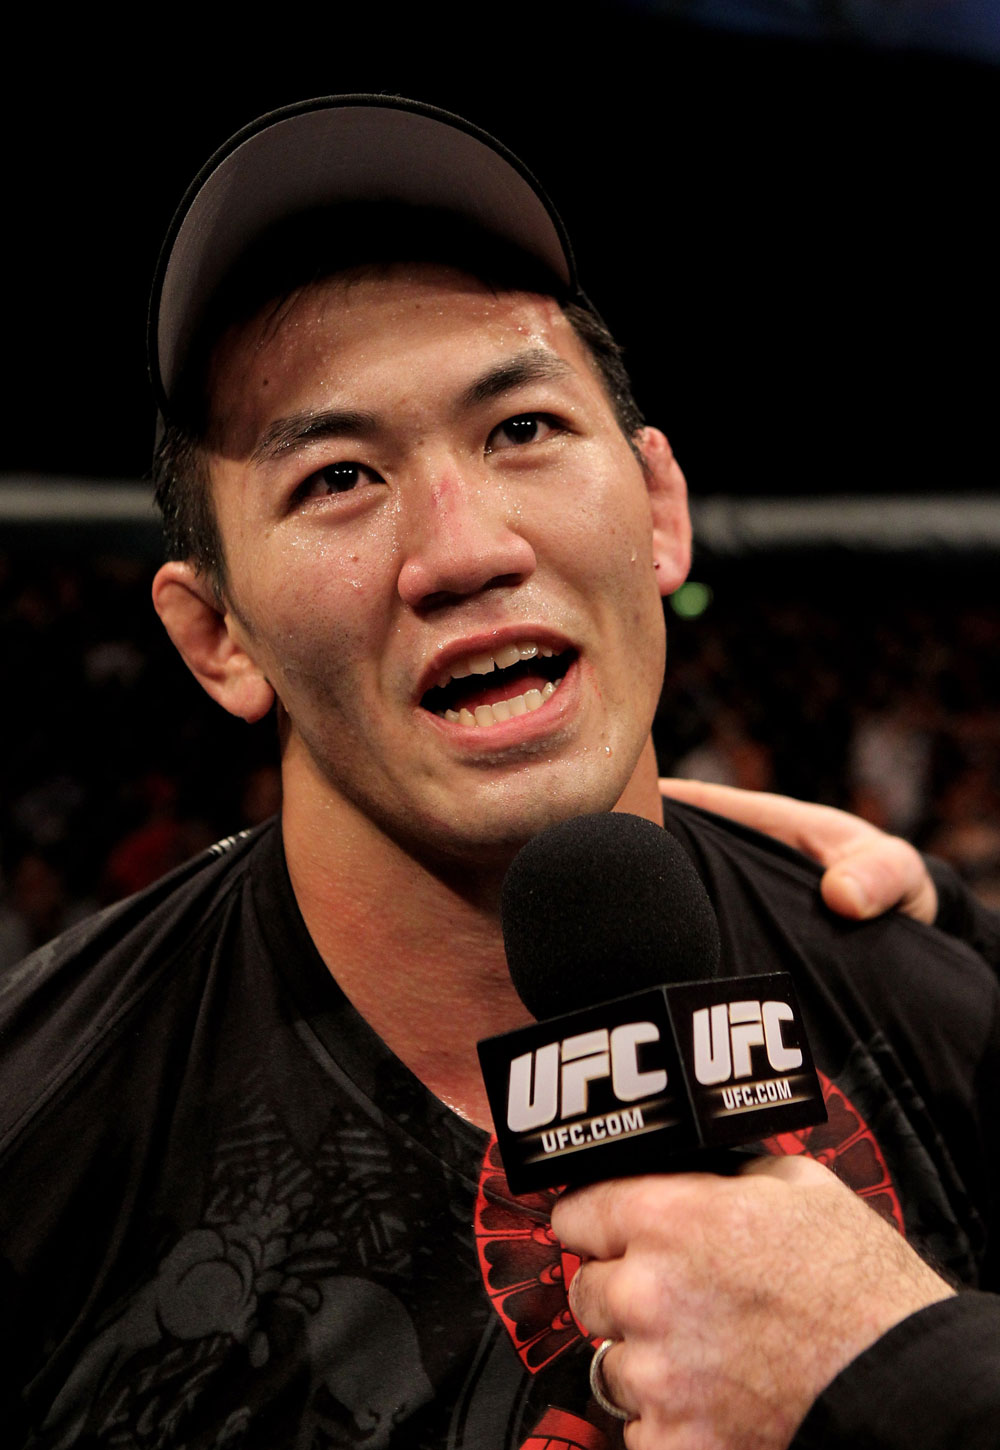 Yushin Okami of Japan is interviewd after his unanimous points victory over Nate Marquardt of the USA during their UFC Middleweight Championship Eliminator bout at the Konig Pilsner Arena on November 13, 2010 in Oberhausen, Germany. (Photo by Josh Hedges/Zuffa LLC/Zuffa LLC)